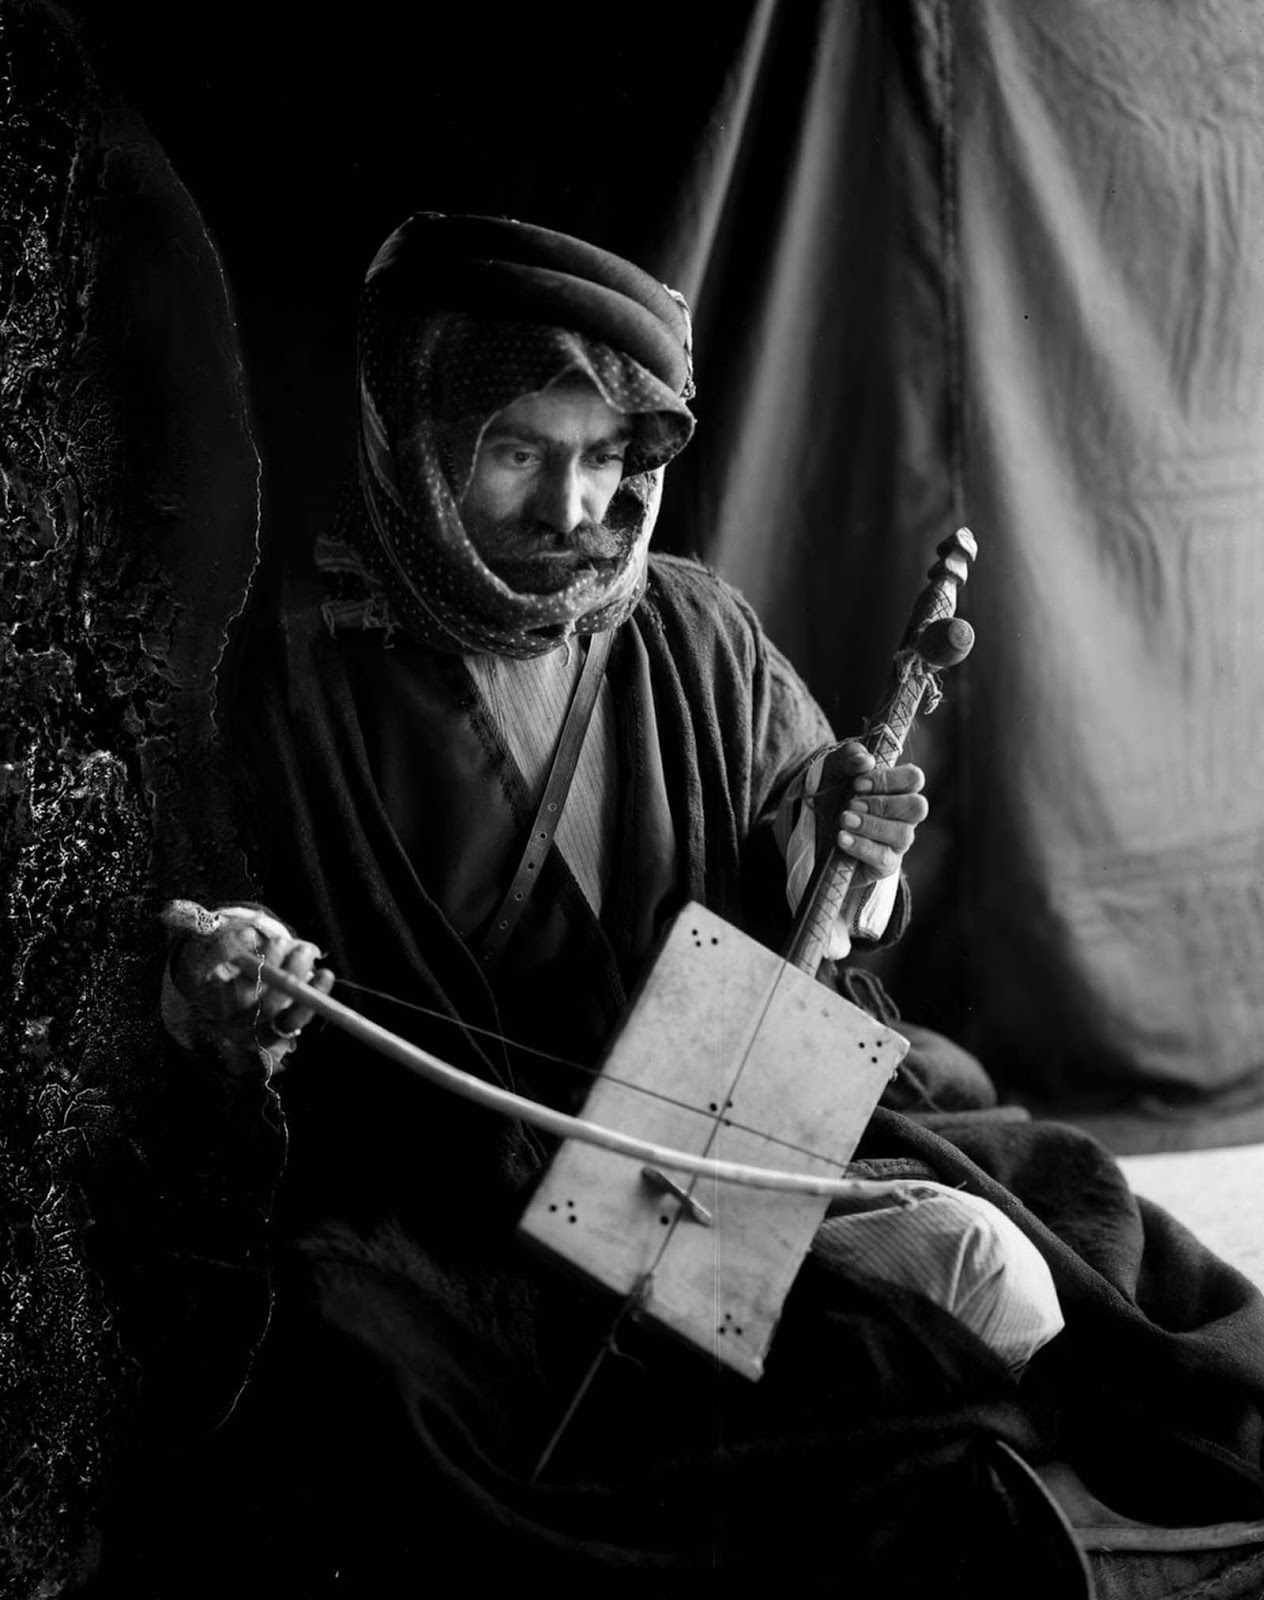 Songs are based on poetry and are sung either unaccompanied, or to the stringed instrument, the rebab. Traditional instruments are the rebab and various woodwinds.